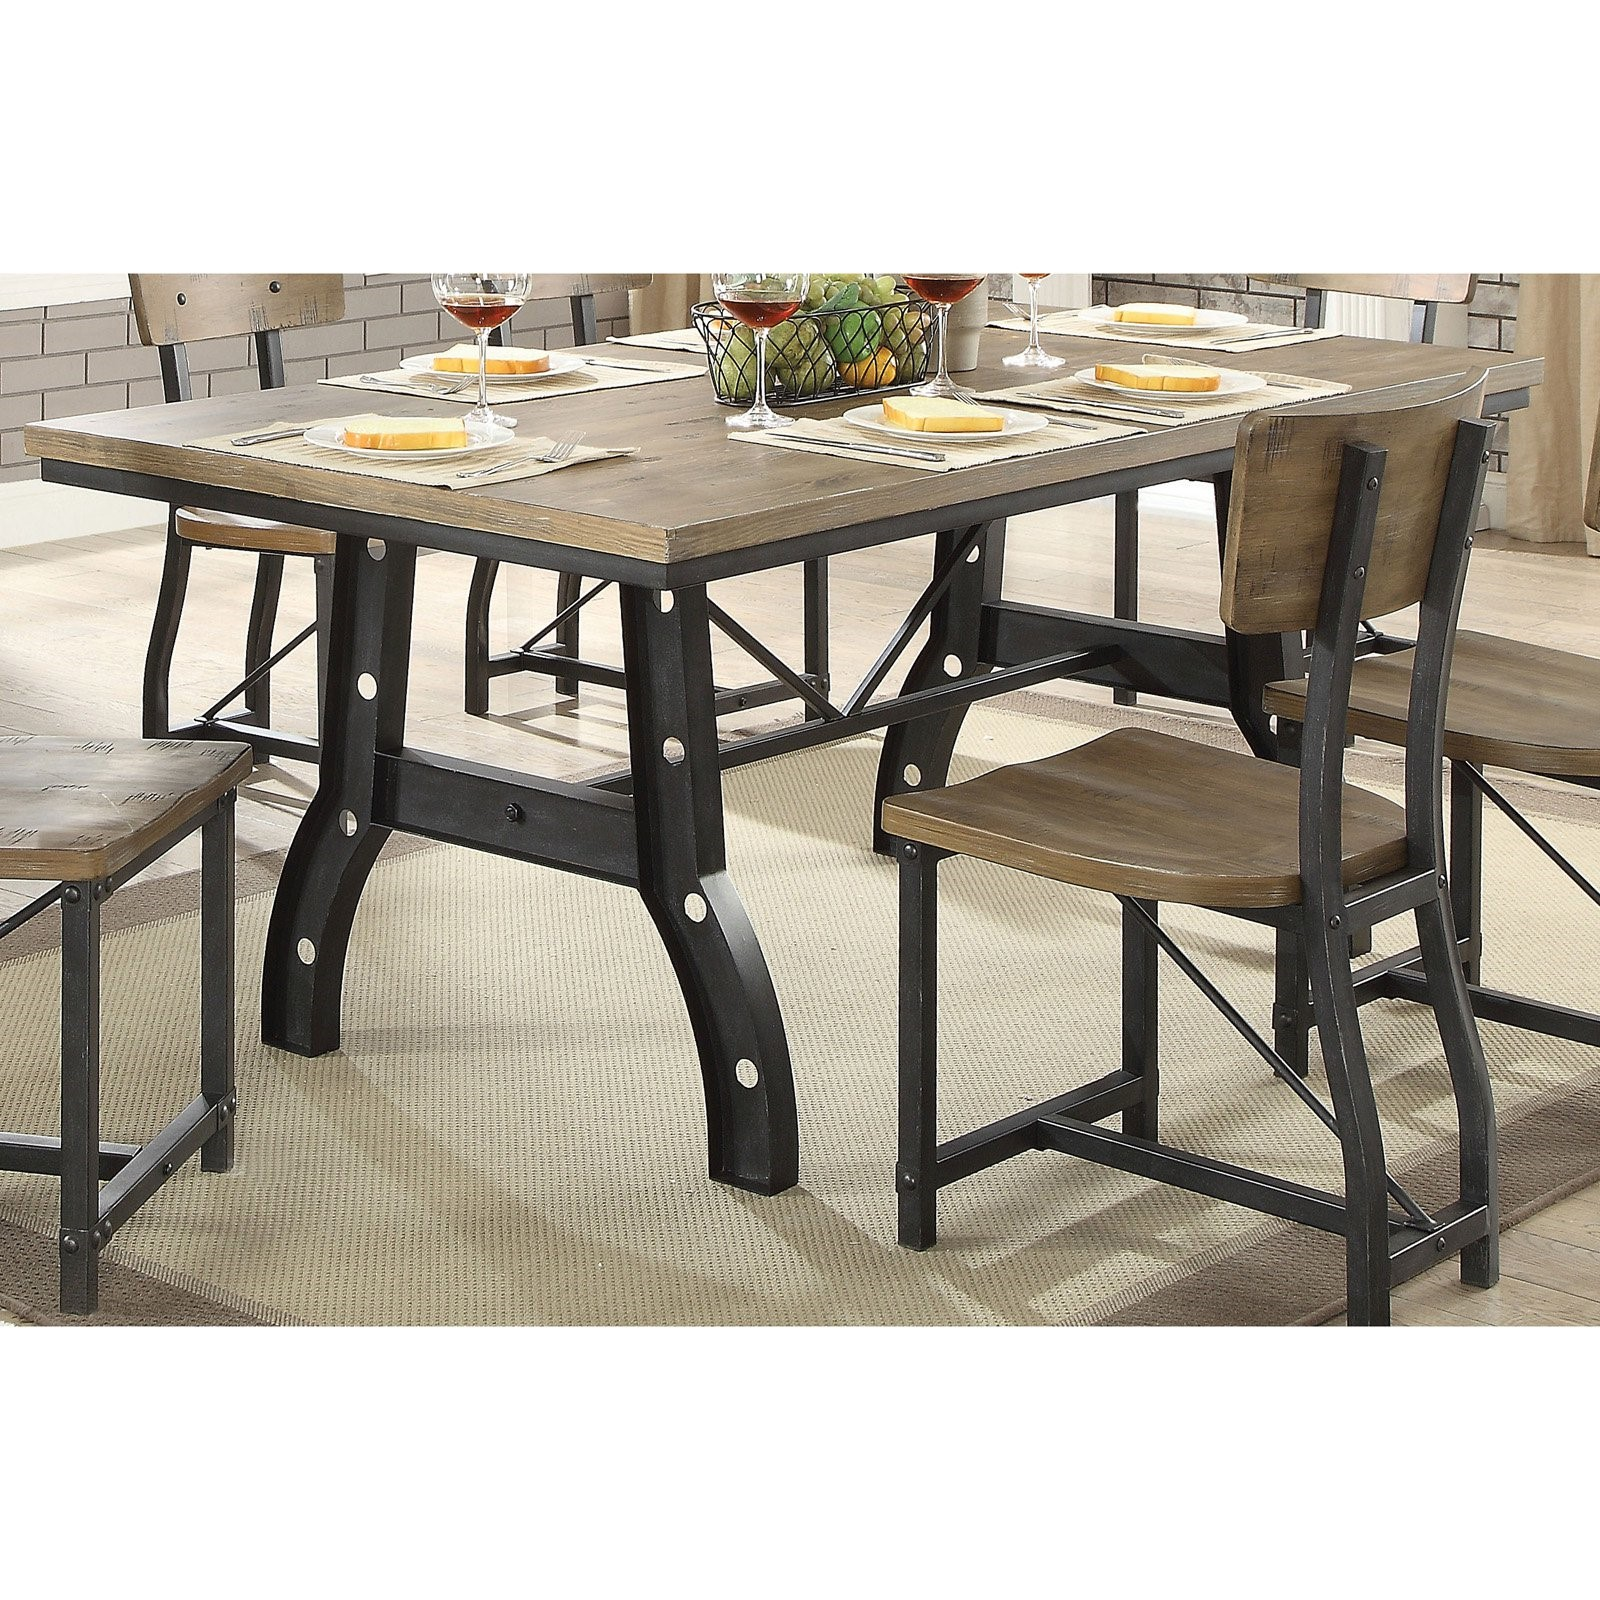 Furniture of America Drake Industrial Dining Table